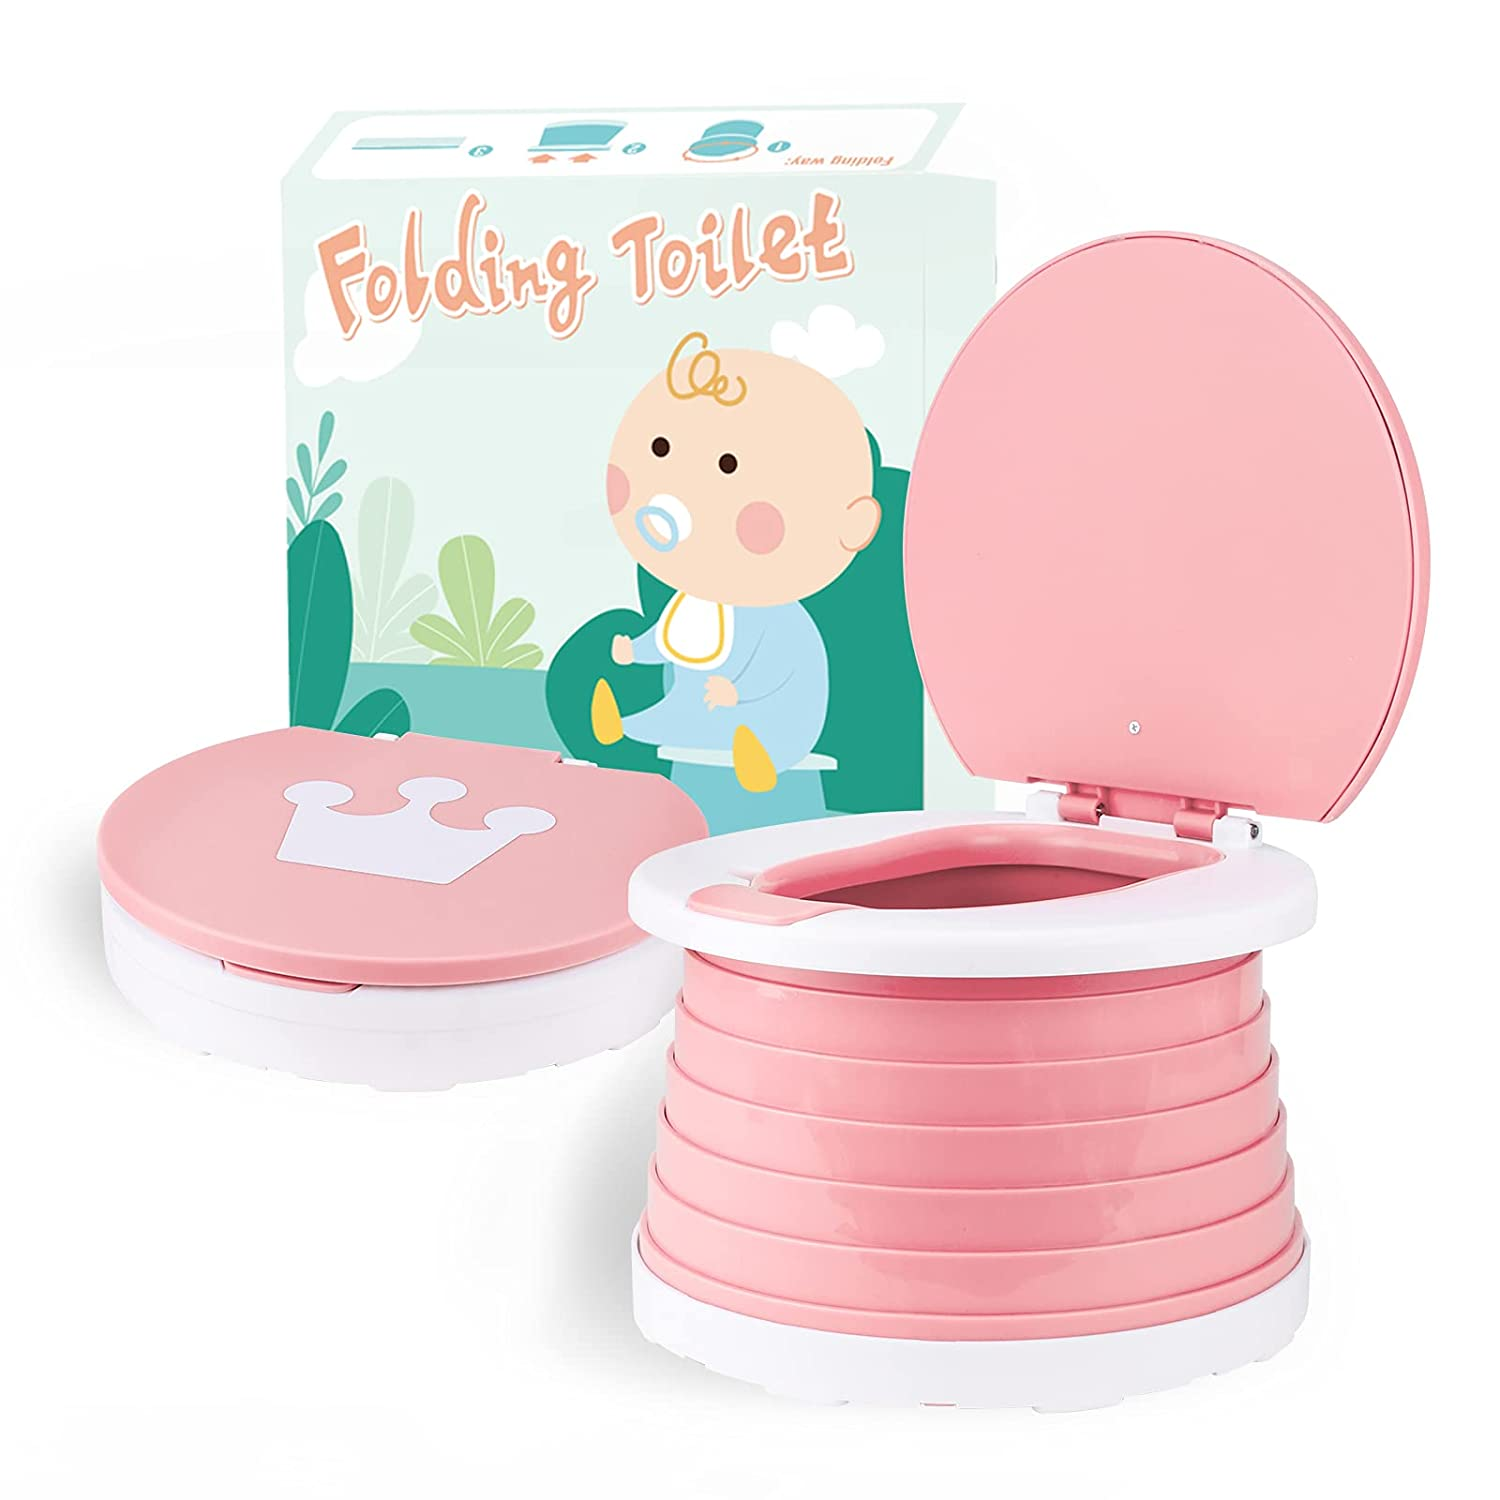 Portable Potty for Toddler Travel In a popularity Trave Toilet Foldable Training Free shipping anywhere in the nation